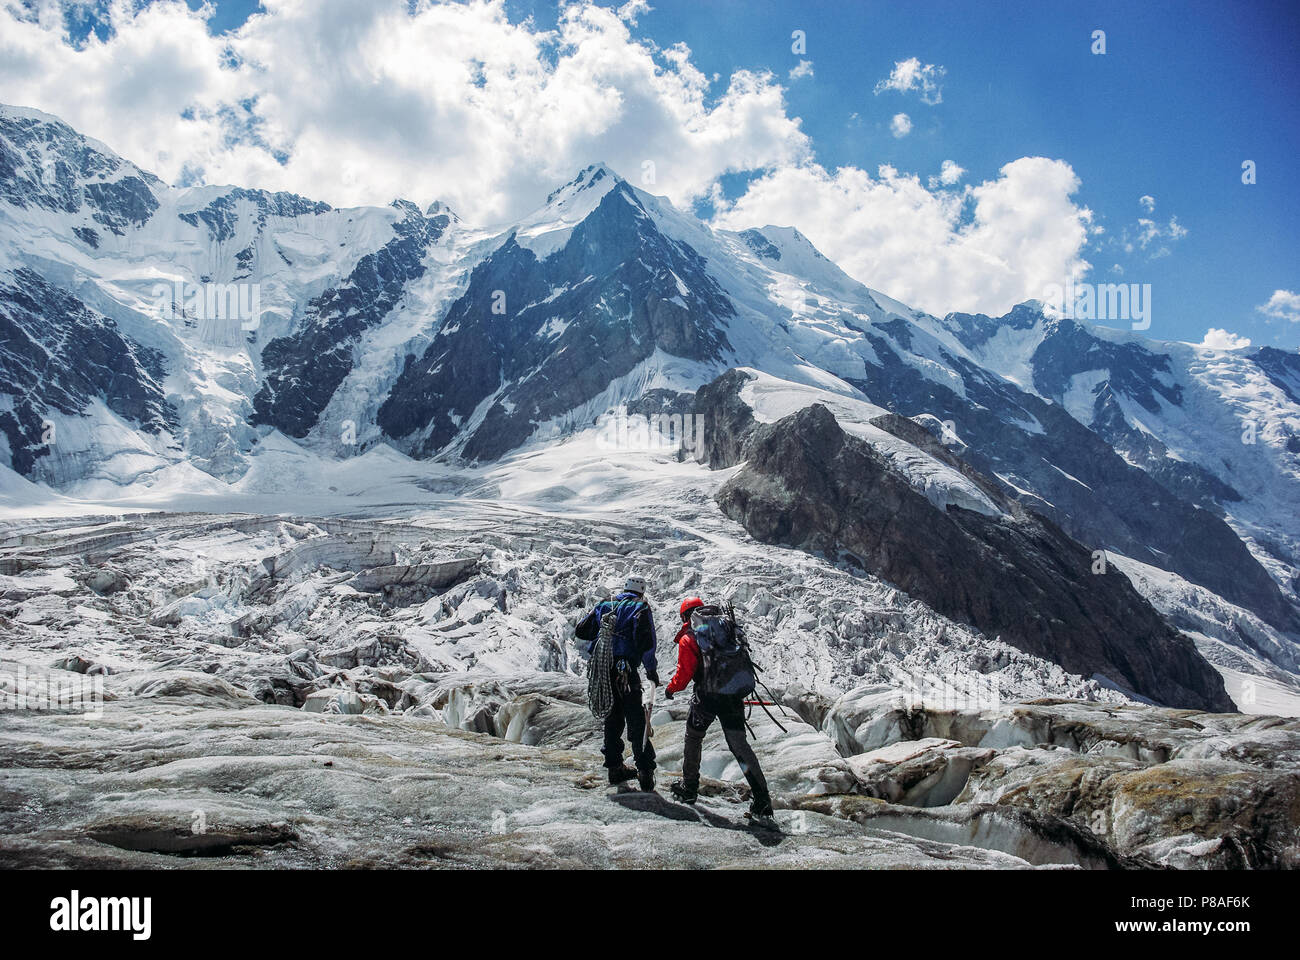 male travelers hiking in snowy mountains, Russian Federation, Caucasus, July 2012 - Stock Image